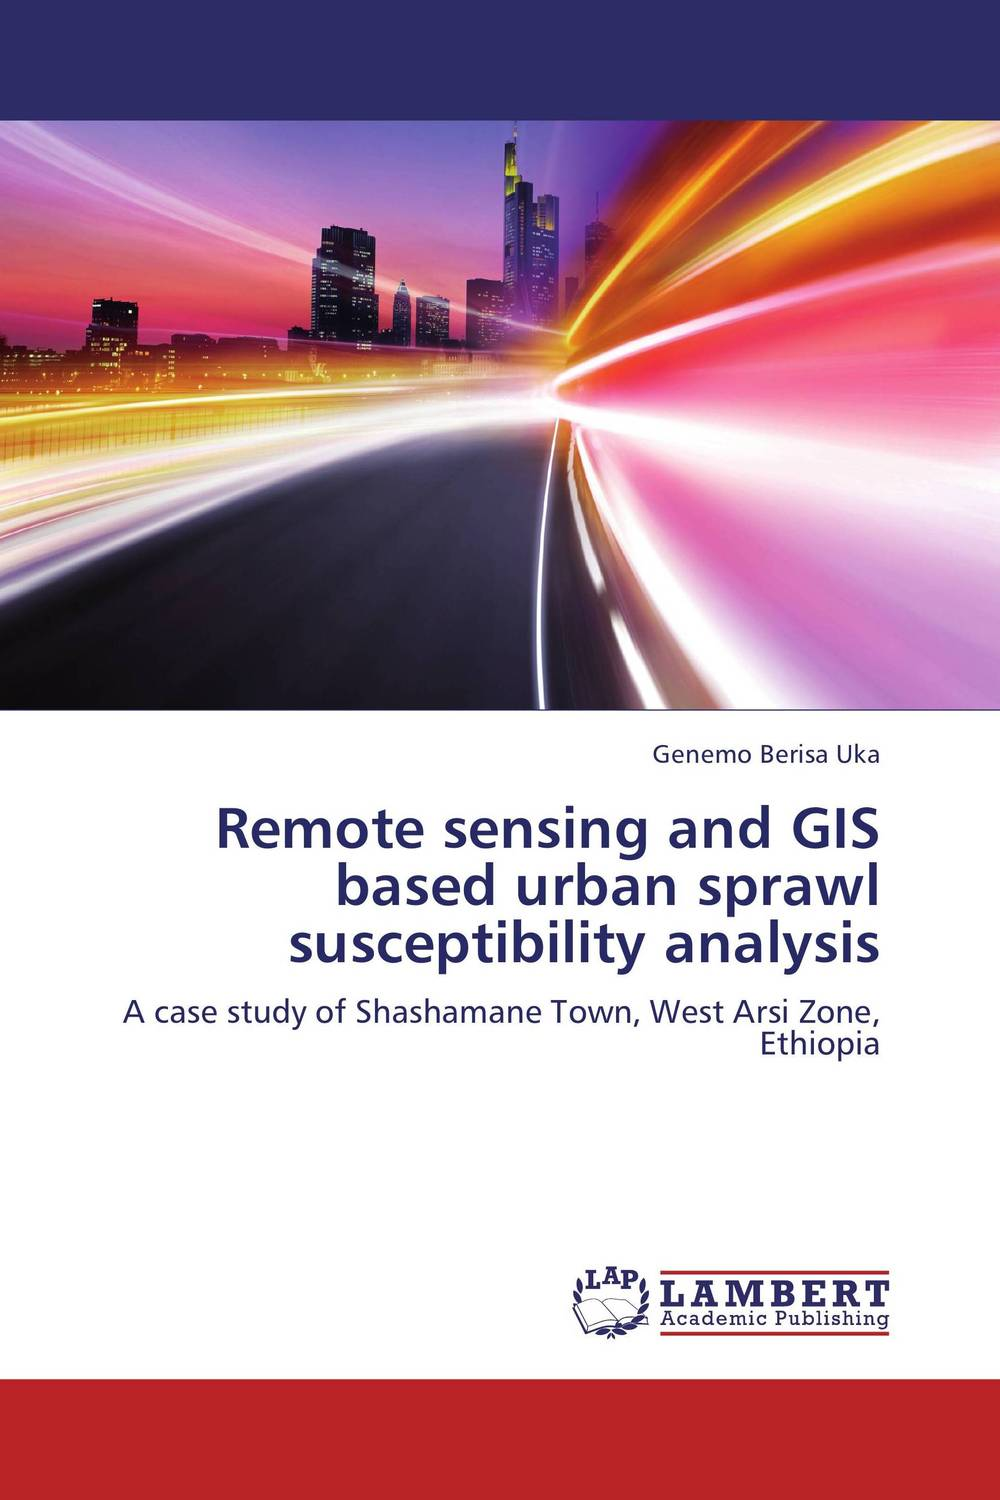 Remote sensing and GIS based urban sprawl susceptibility analysis remote sensing inversion problems and natural hazards asradvances in space research volume 21 3